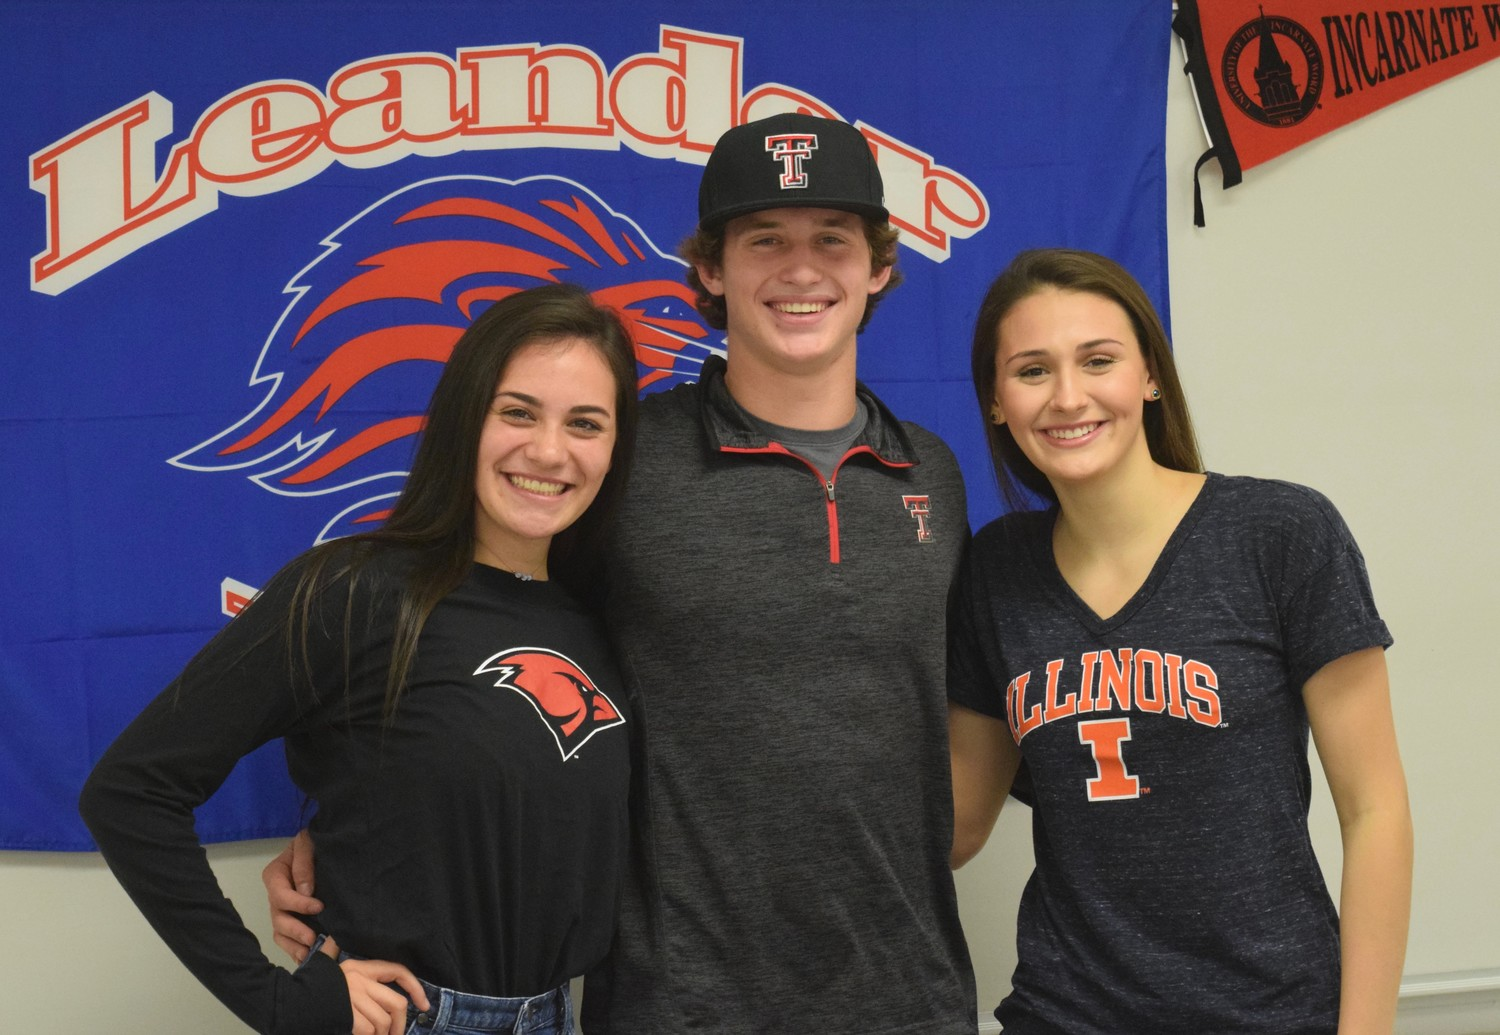 From left, Pilar Gonzaba will play volleyball at Incarnate Word, Mason Montgomery will play baseball at Texas Tech, and Sarah Cano will swim at Illinois.